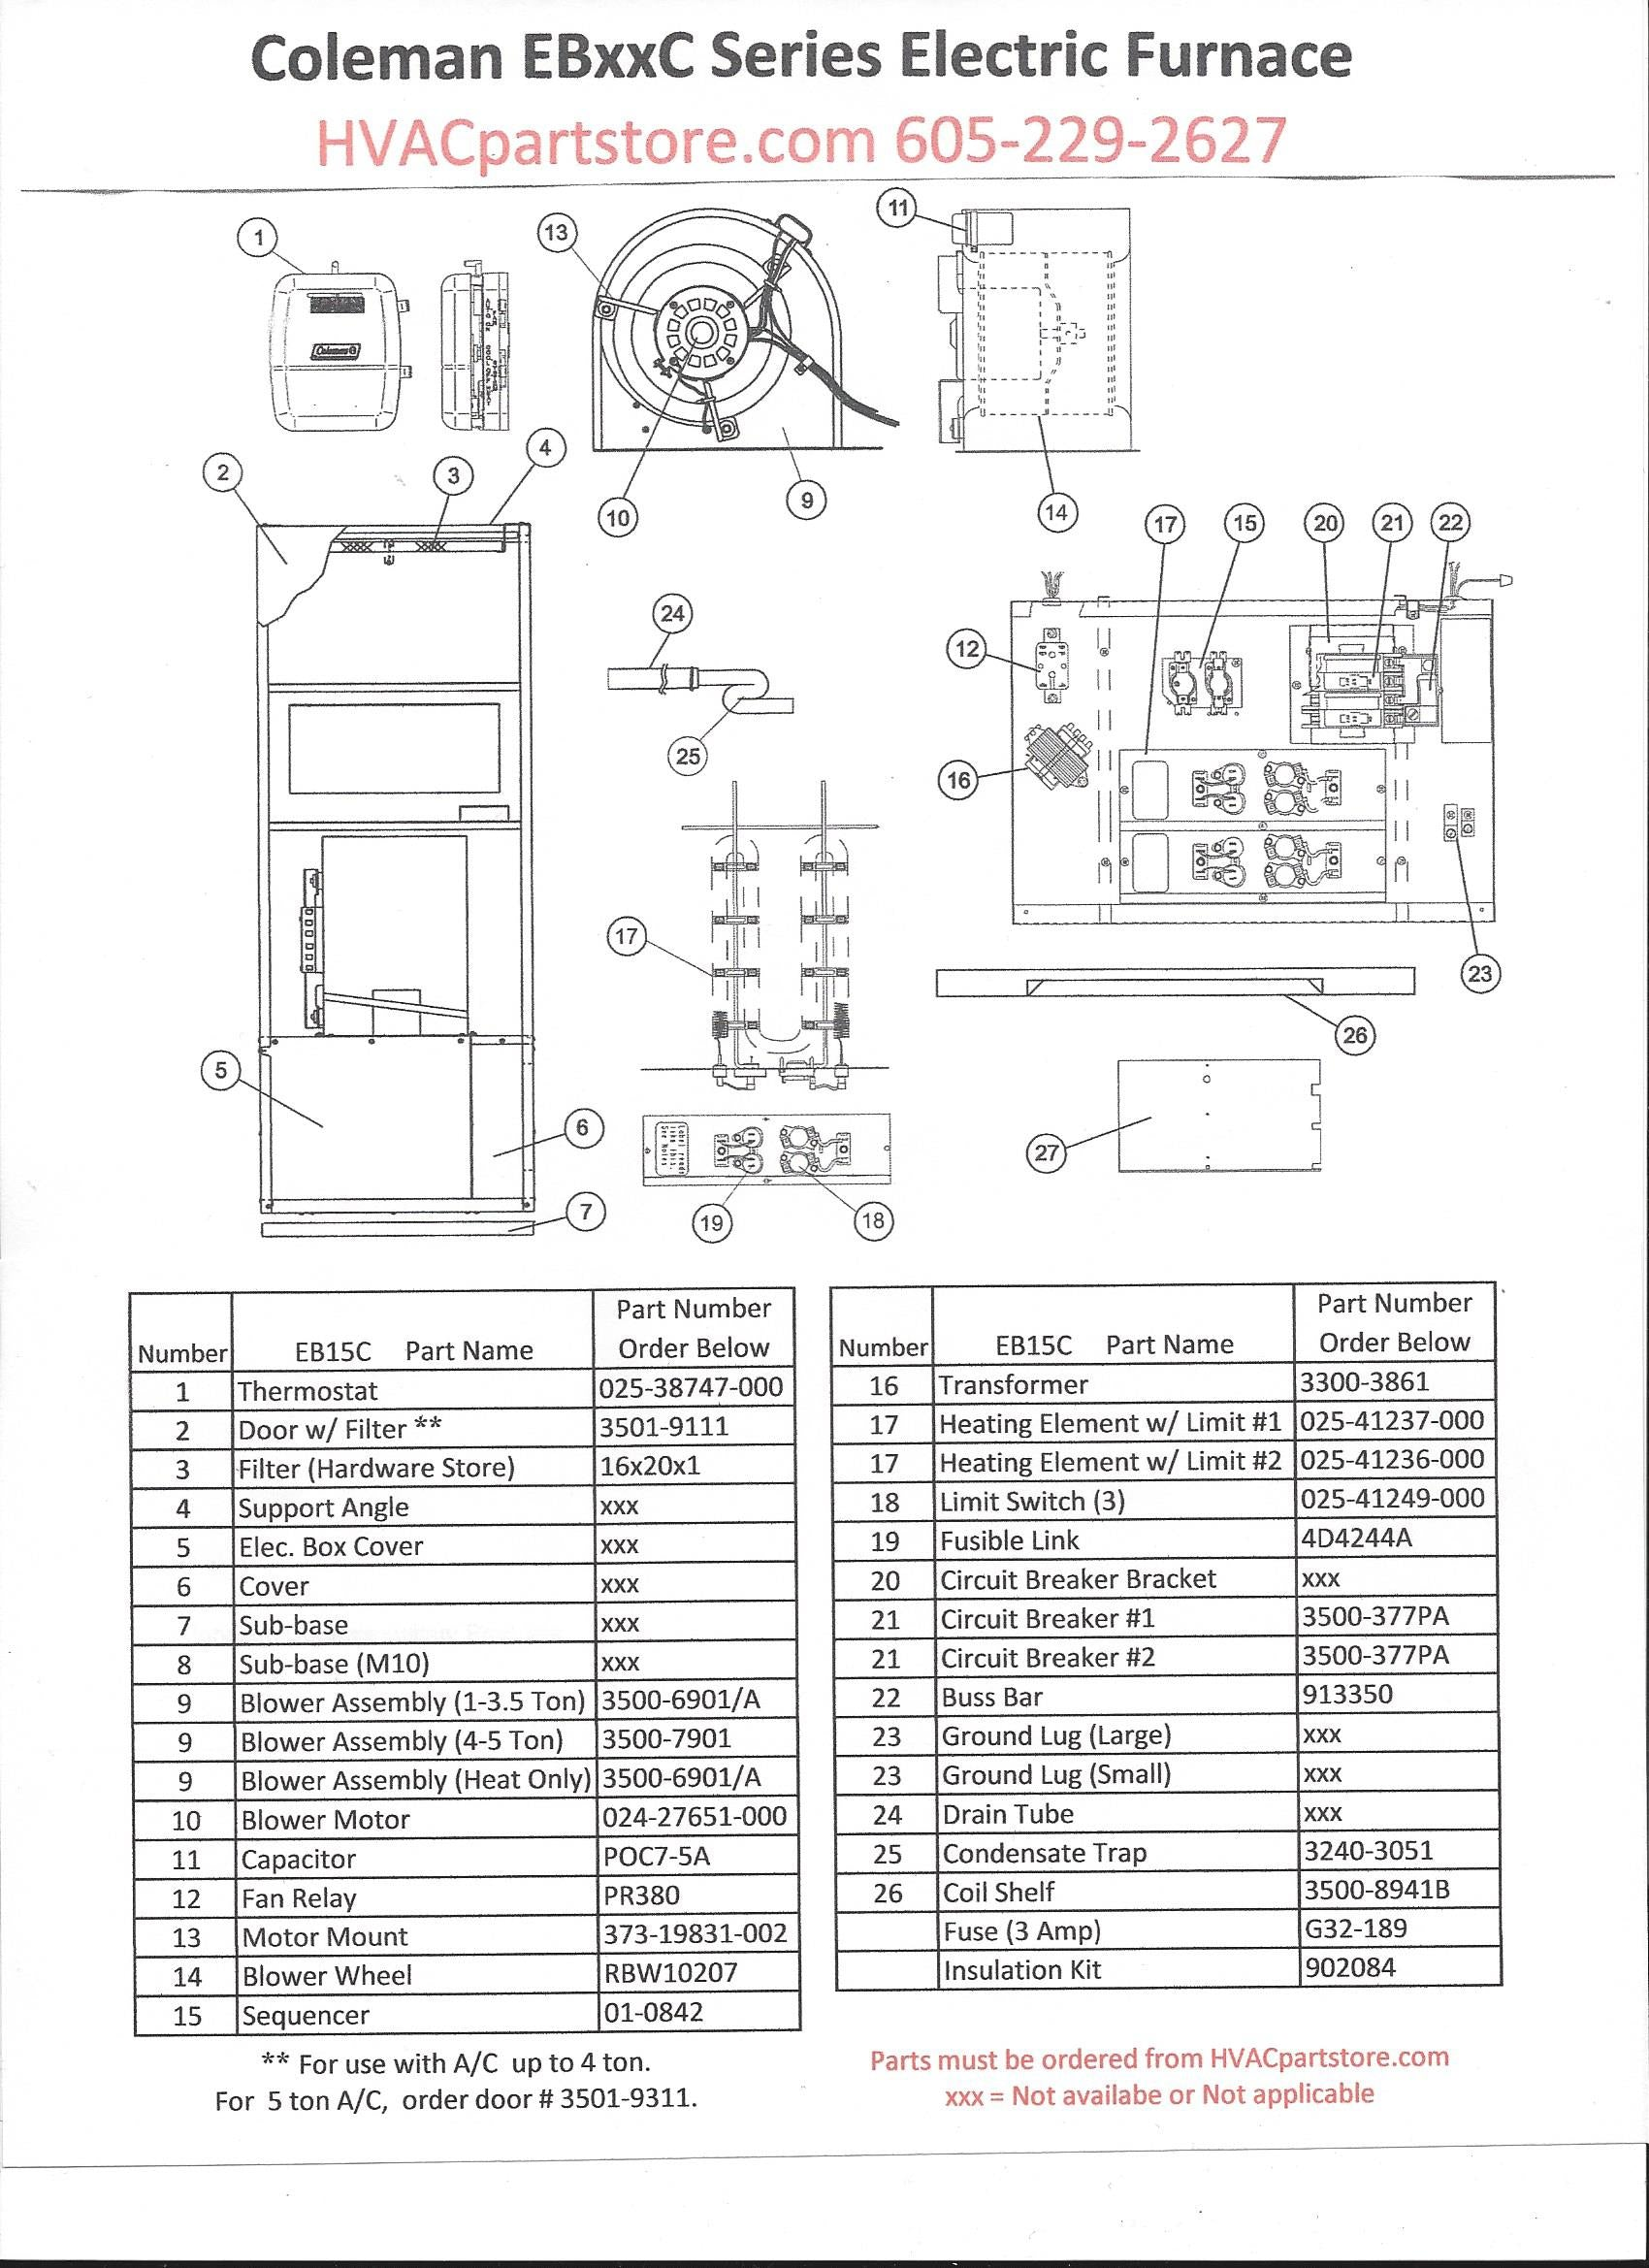 EB15Cparts?13130982346353216068 eb15c coleman electric furnace parts hvacpartstore Gas Furnace Wiring Diagram at suagrazia.org